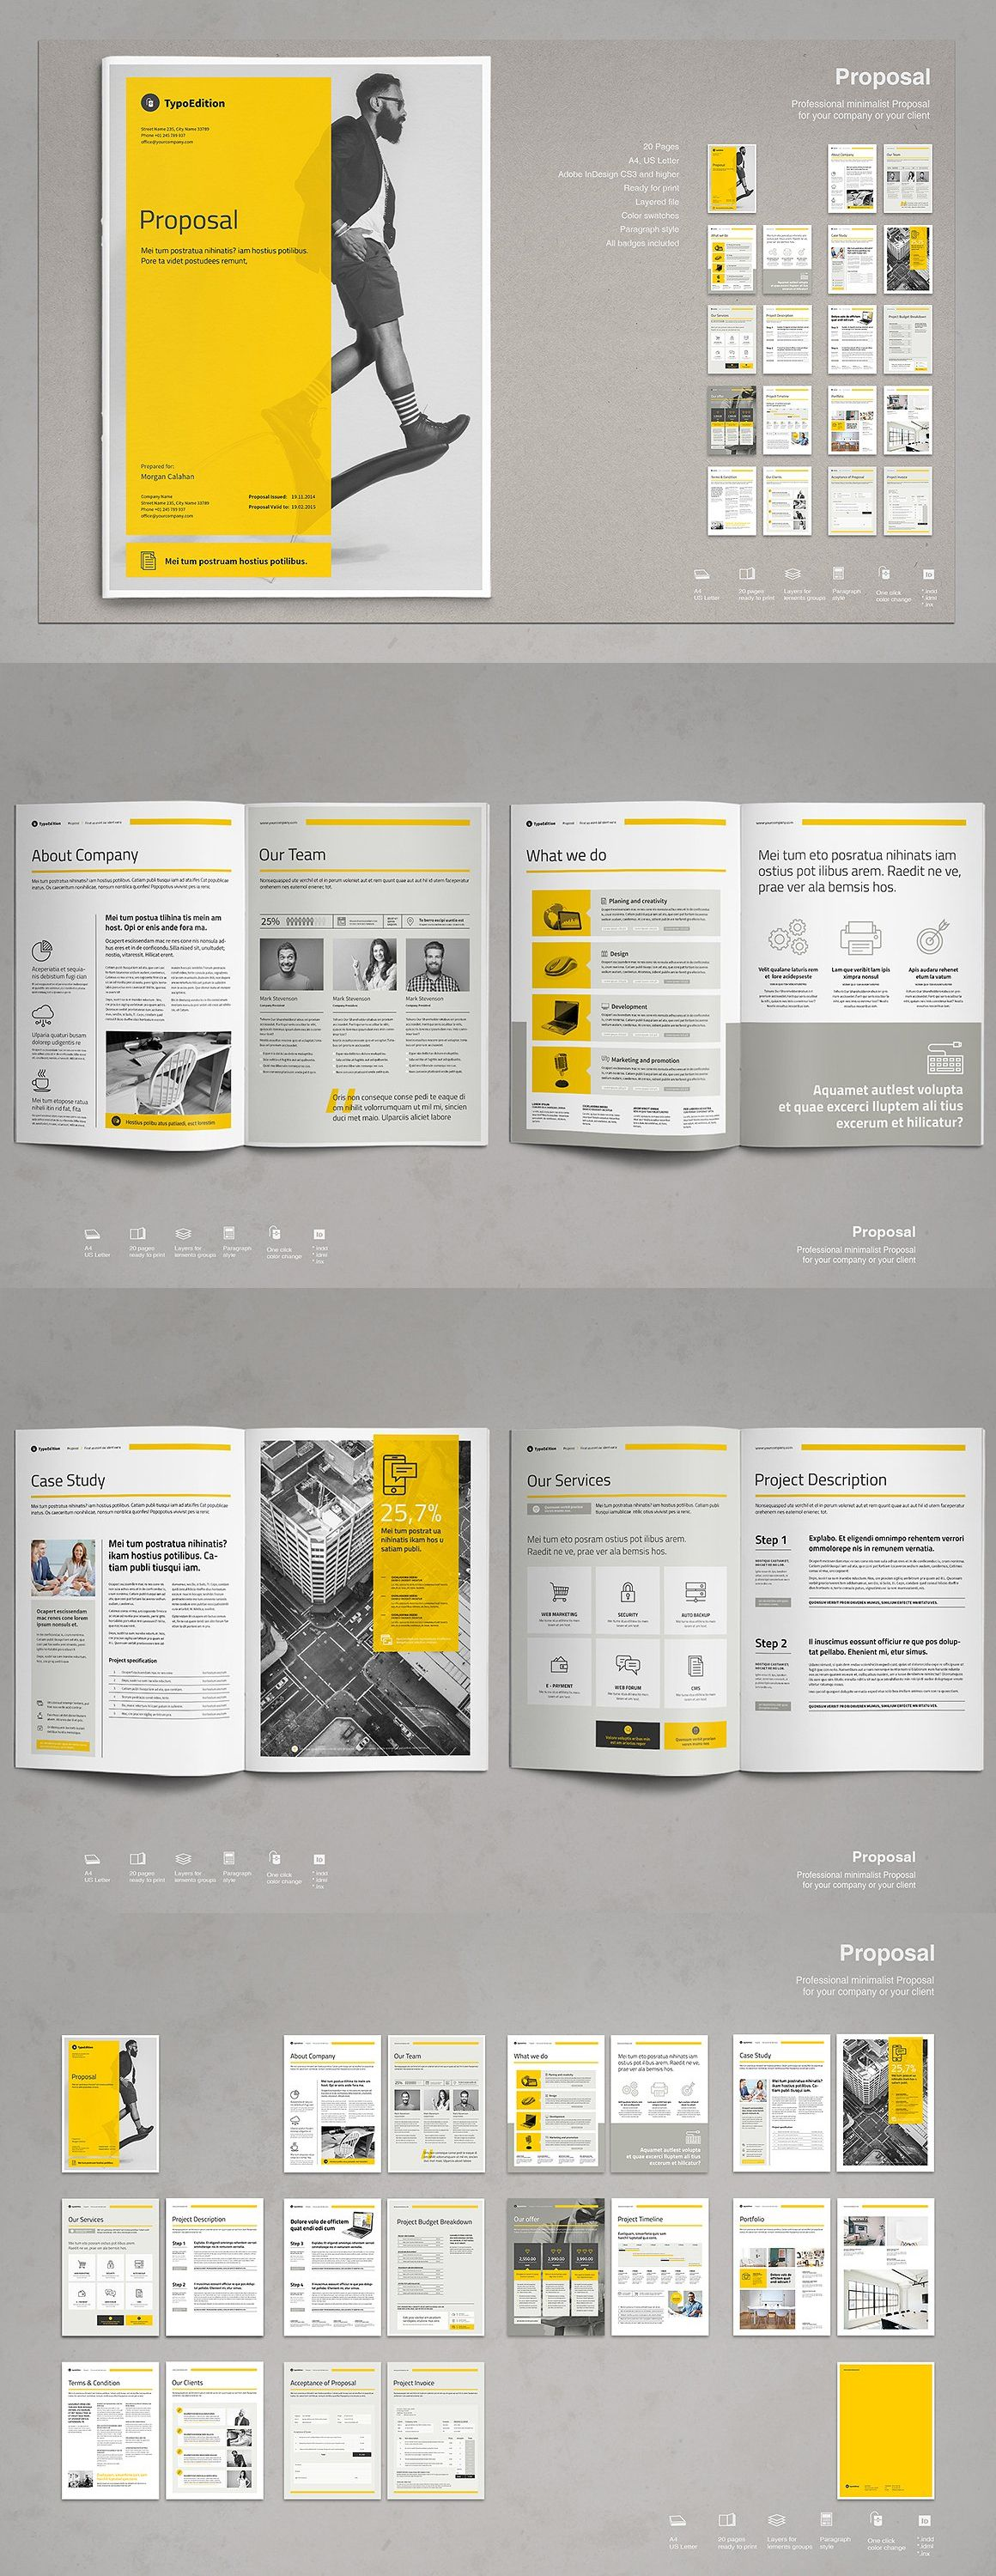 Commercial Proposal Format Beauteous Business Proposal  Business Proposal Template Business Proposal .